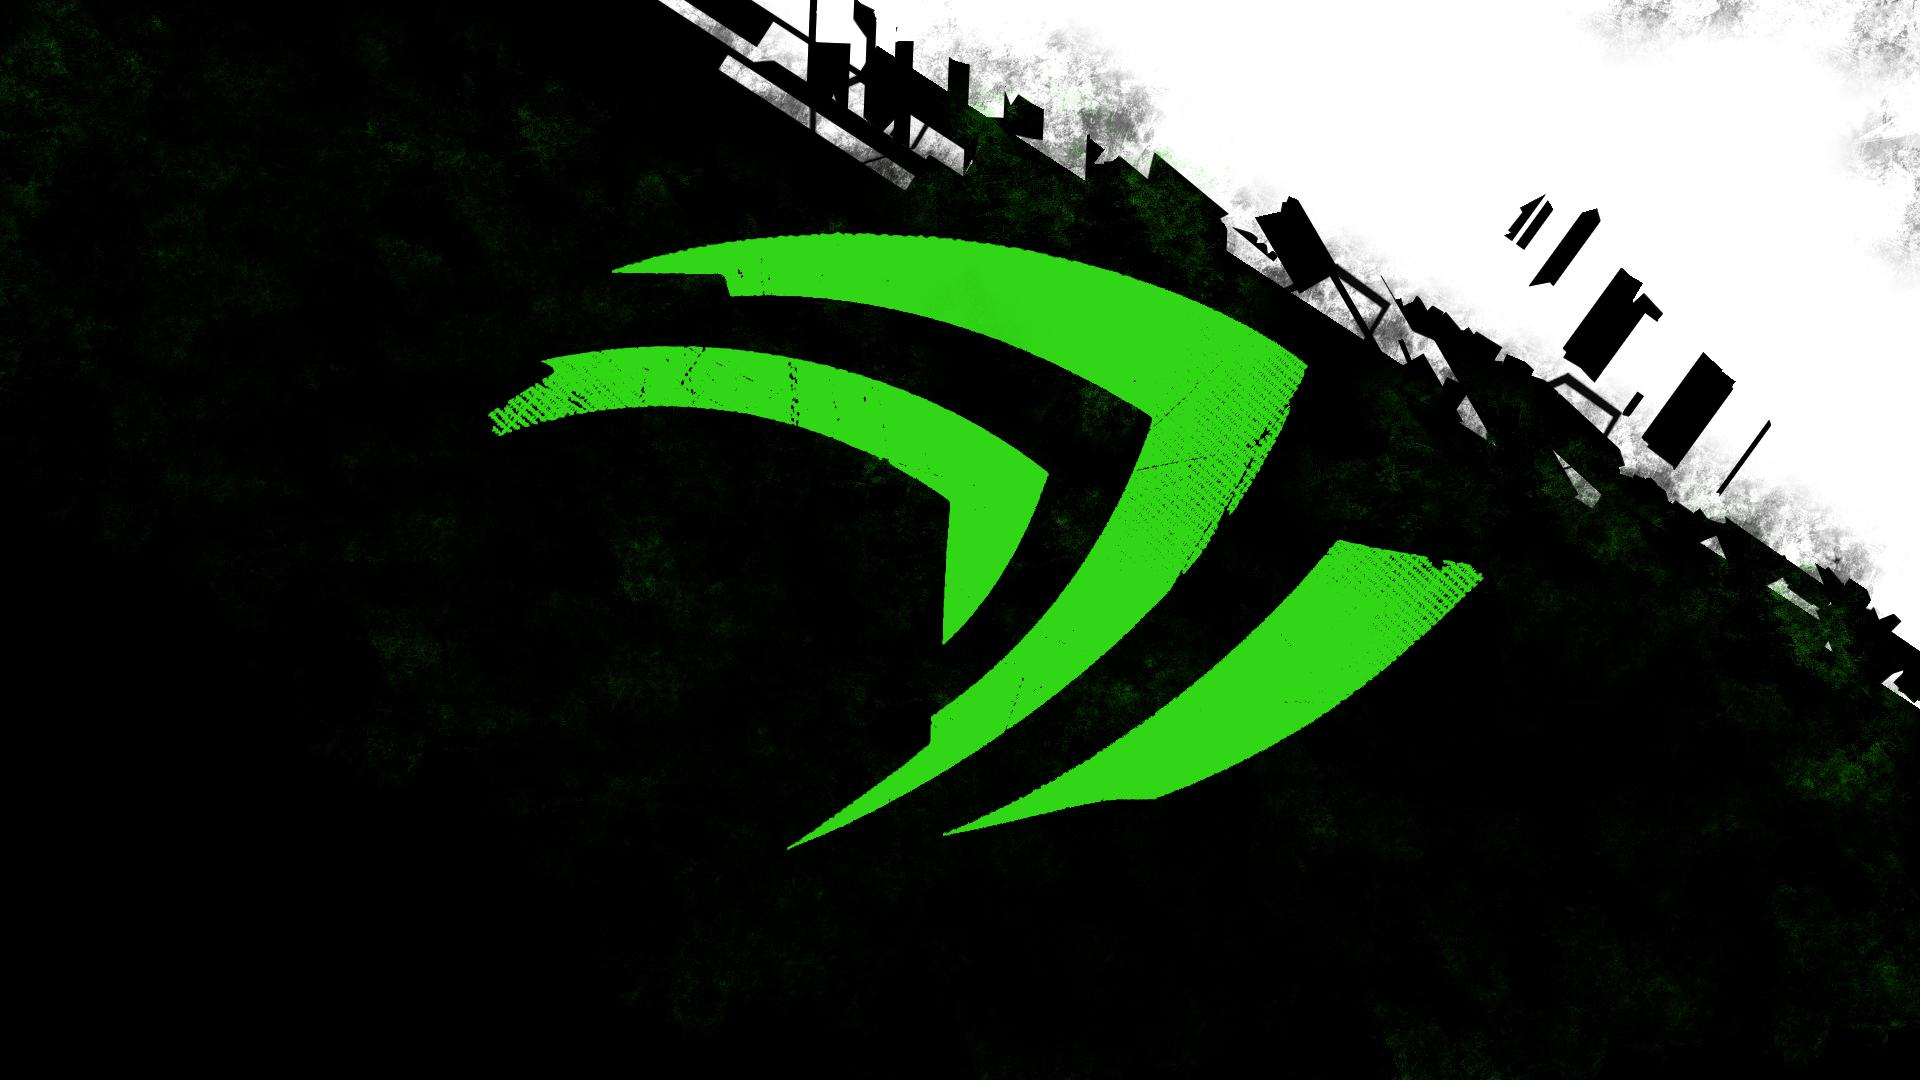 Nvidia Wallpapers, Pictures, Images - 129.6KB